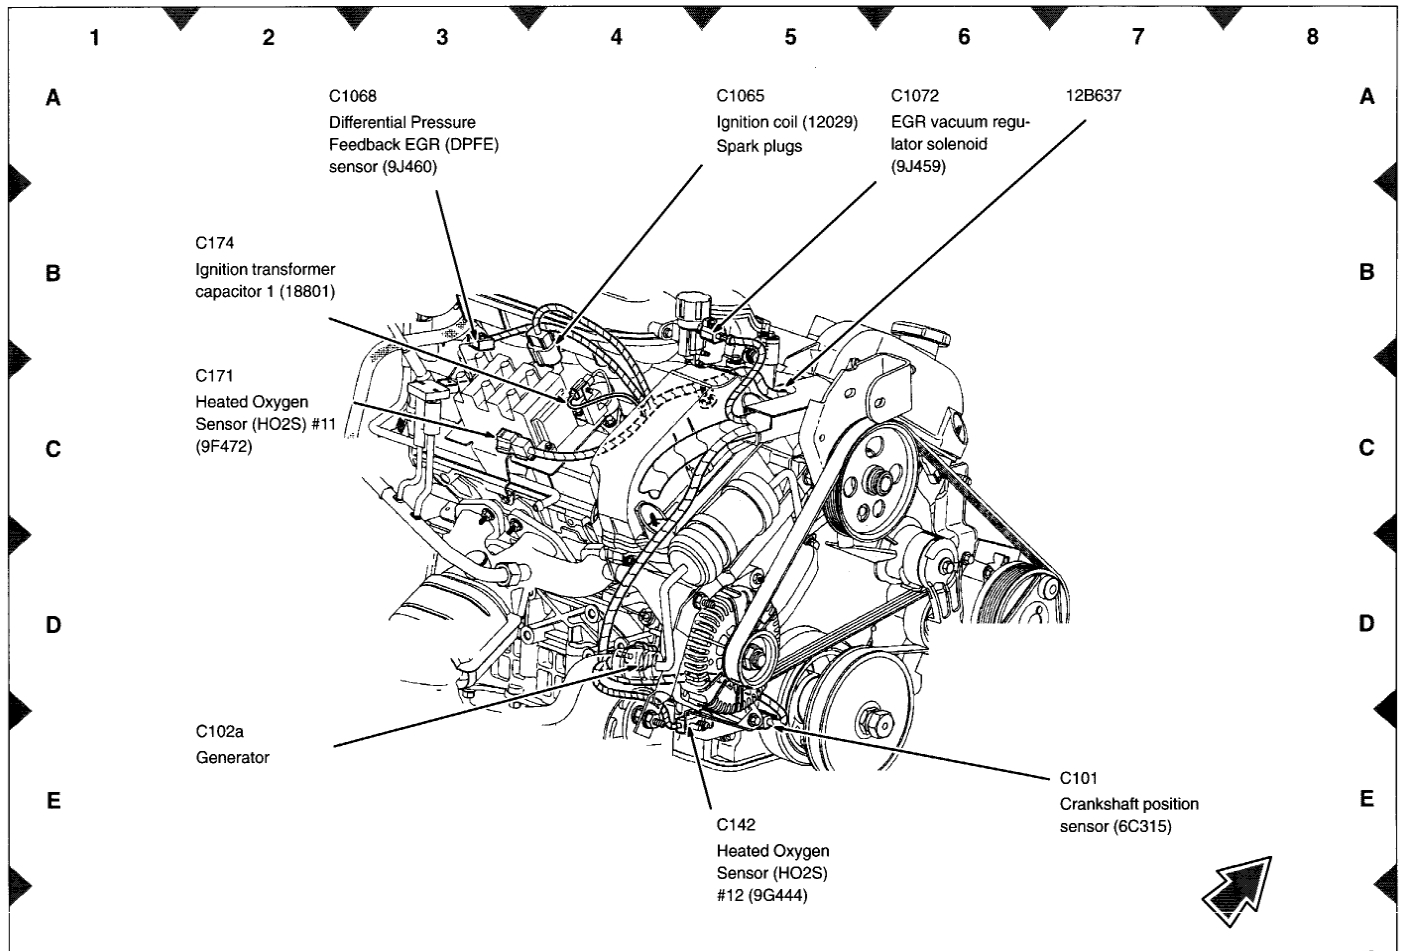 O2 Sensor Wiring Diagram 2001 Taurus. Fan Clutch Wiring